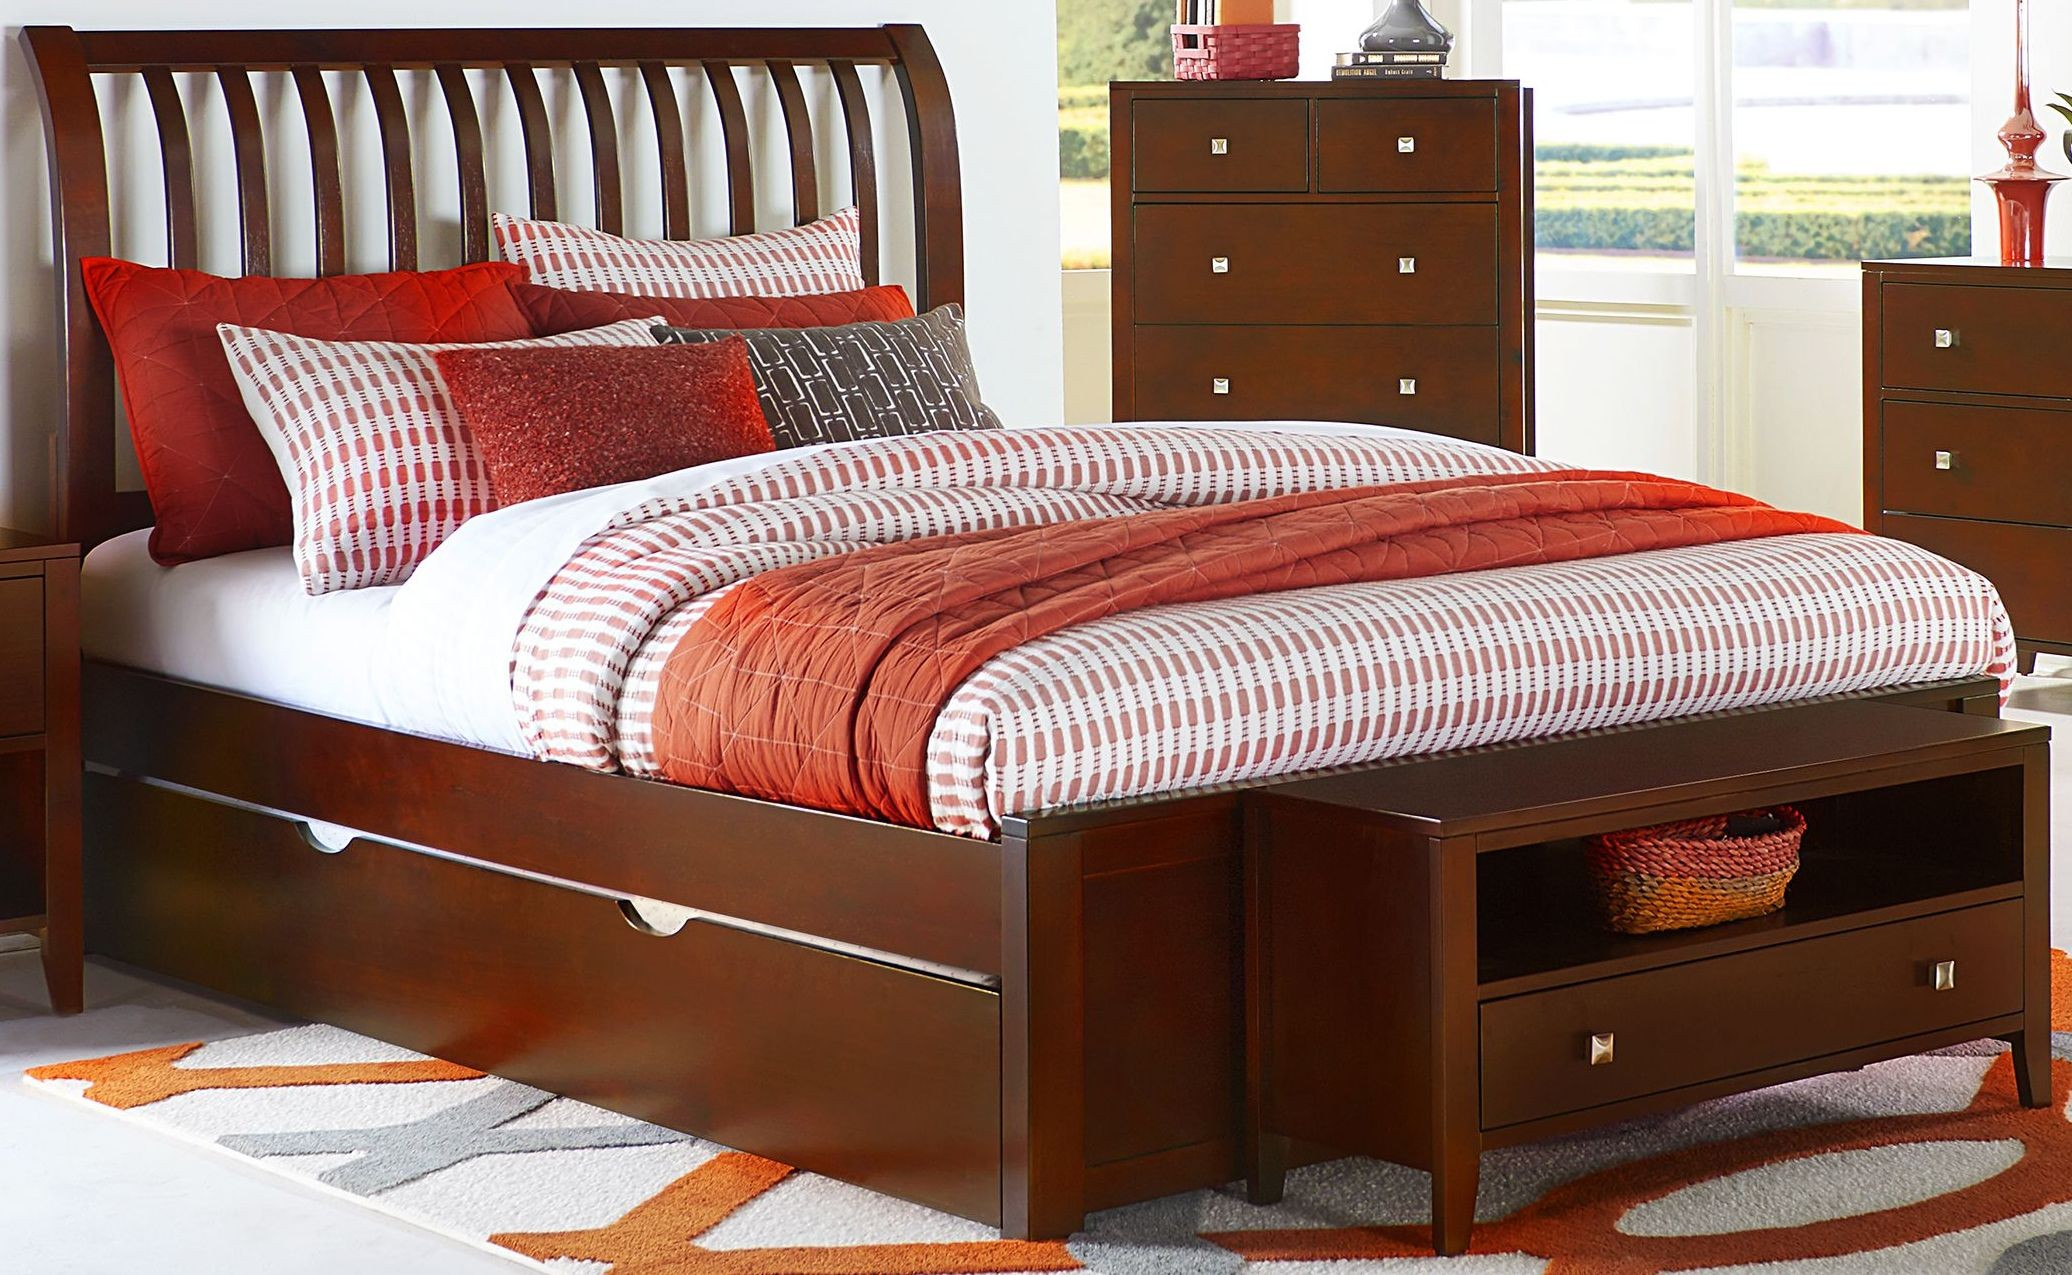 Pulse Cherry Queen Rake Sleigh Bed With Trundle 31033nt